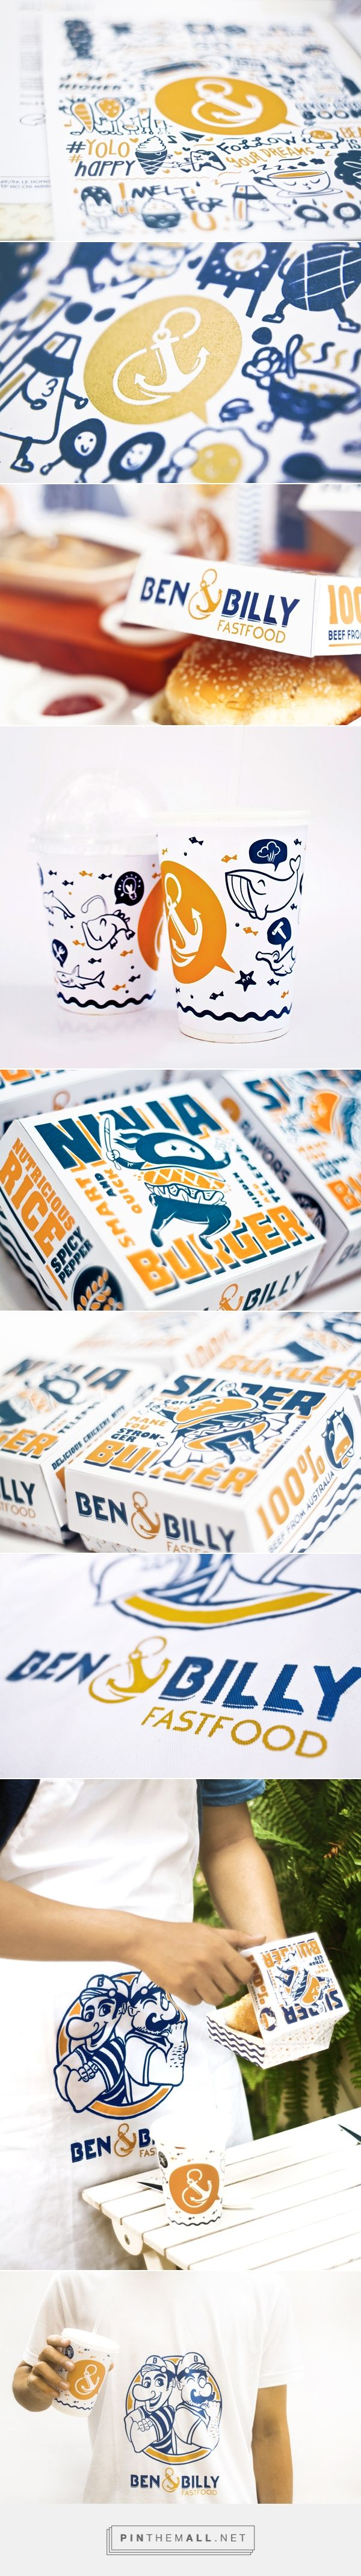 Ben & Billy on Behance #design #branding #identity... - a grouped images picture - Pin Them All